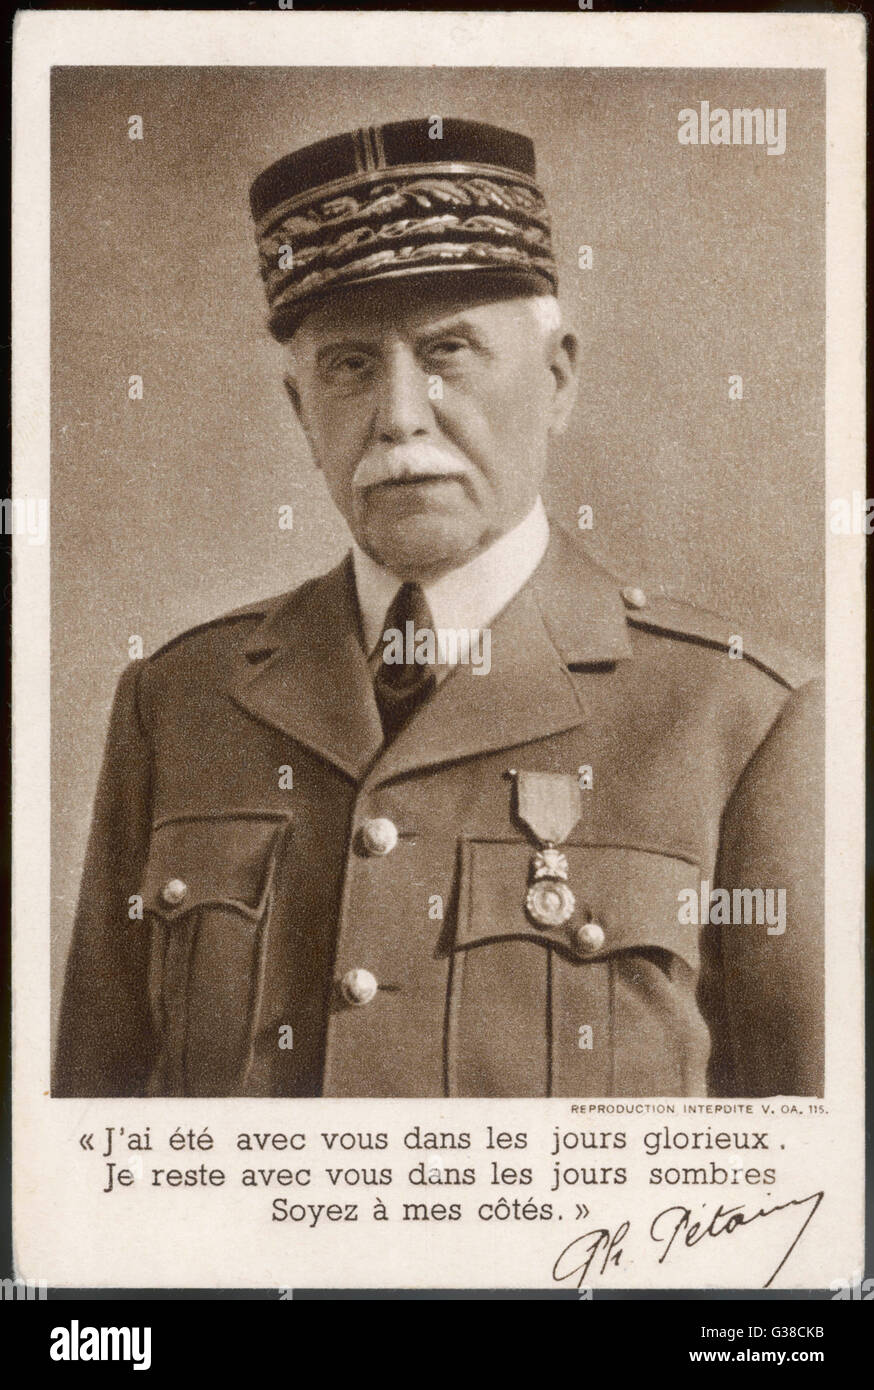 Marshal PHILIPPE PETAIN A propaganda message in 1940 :  'I have been with you in  glorious days.  I am still - Stock Image